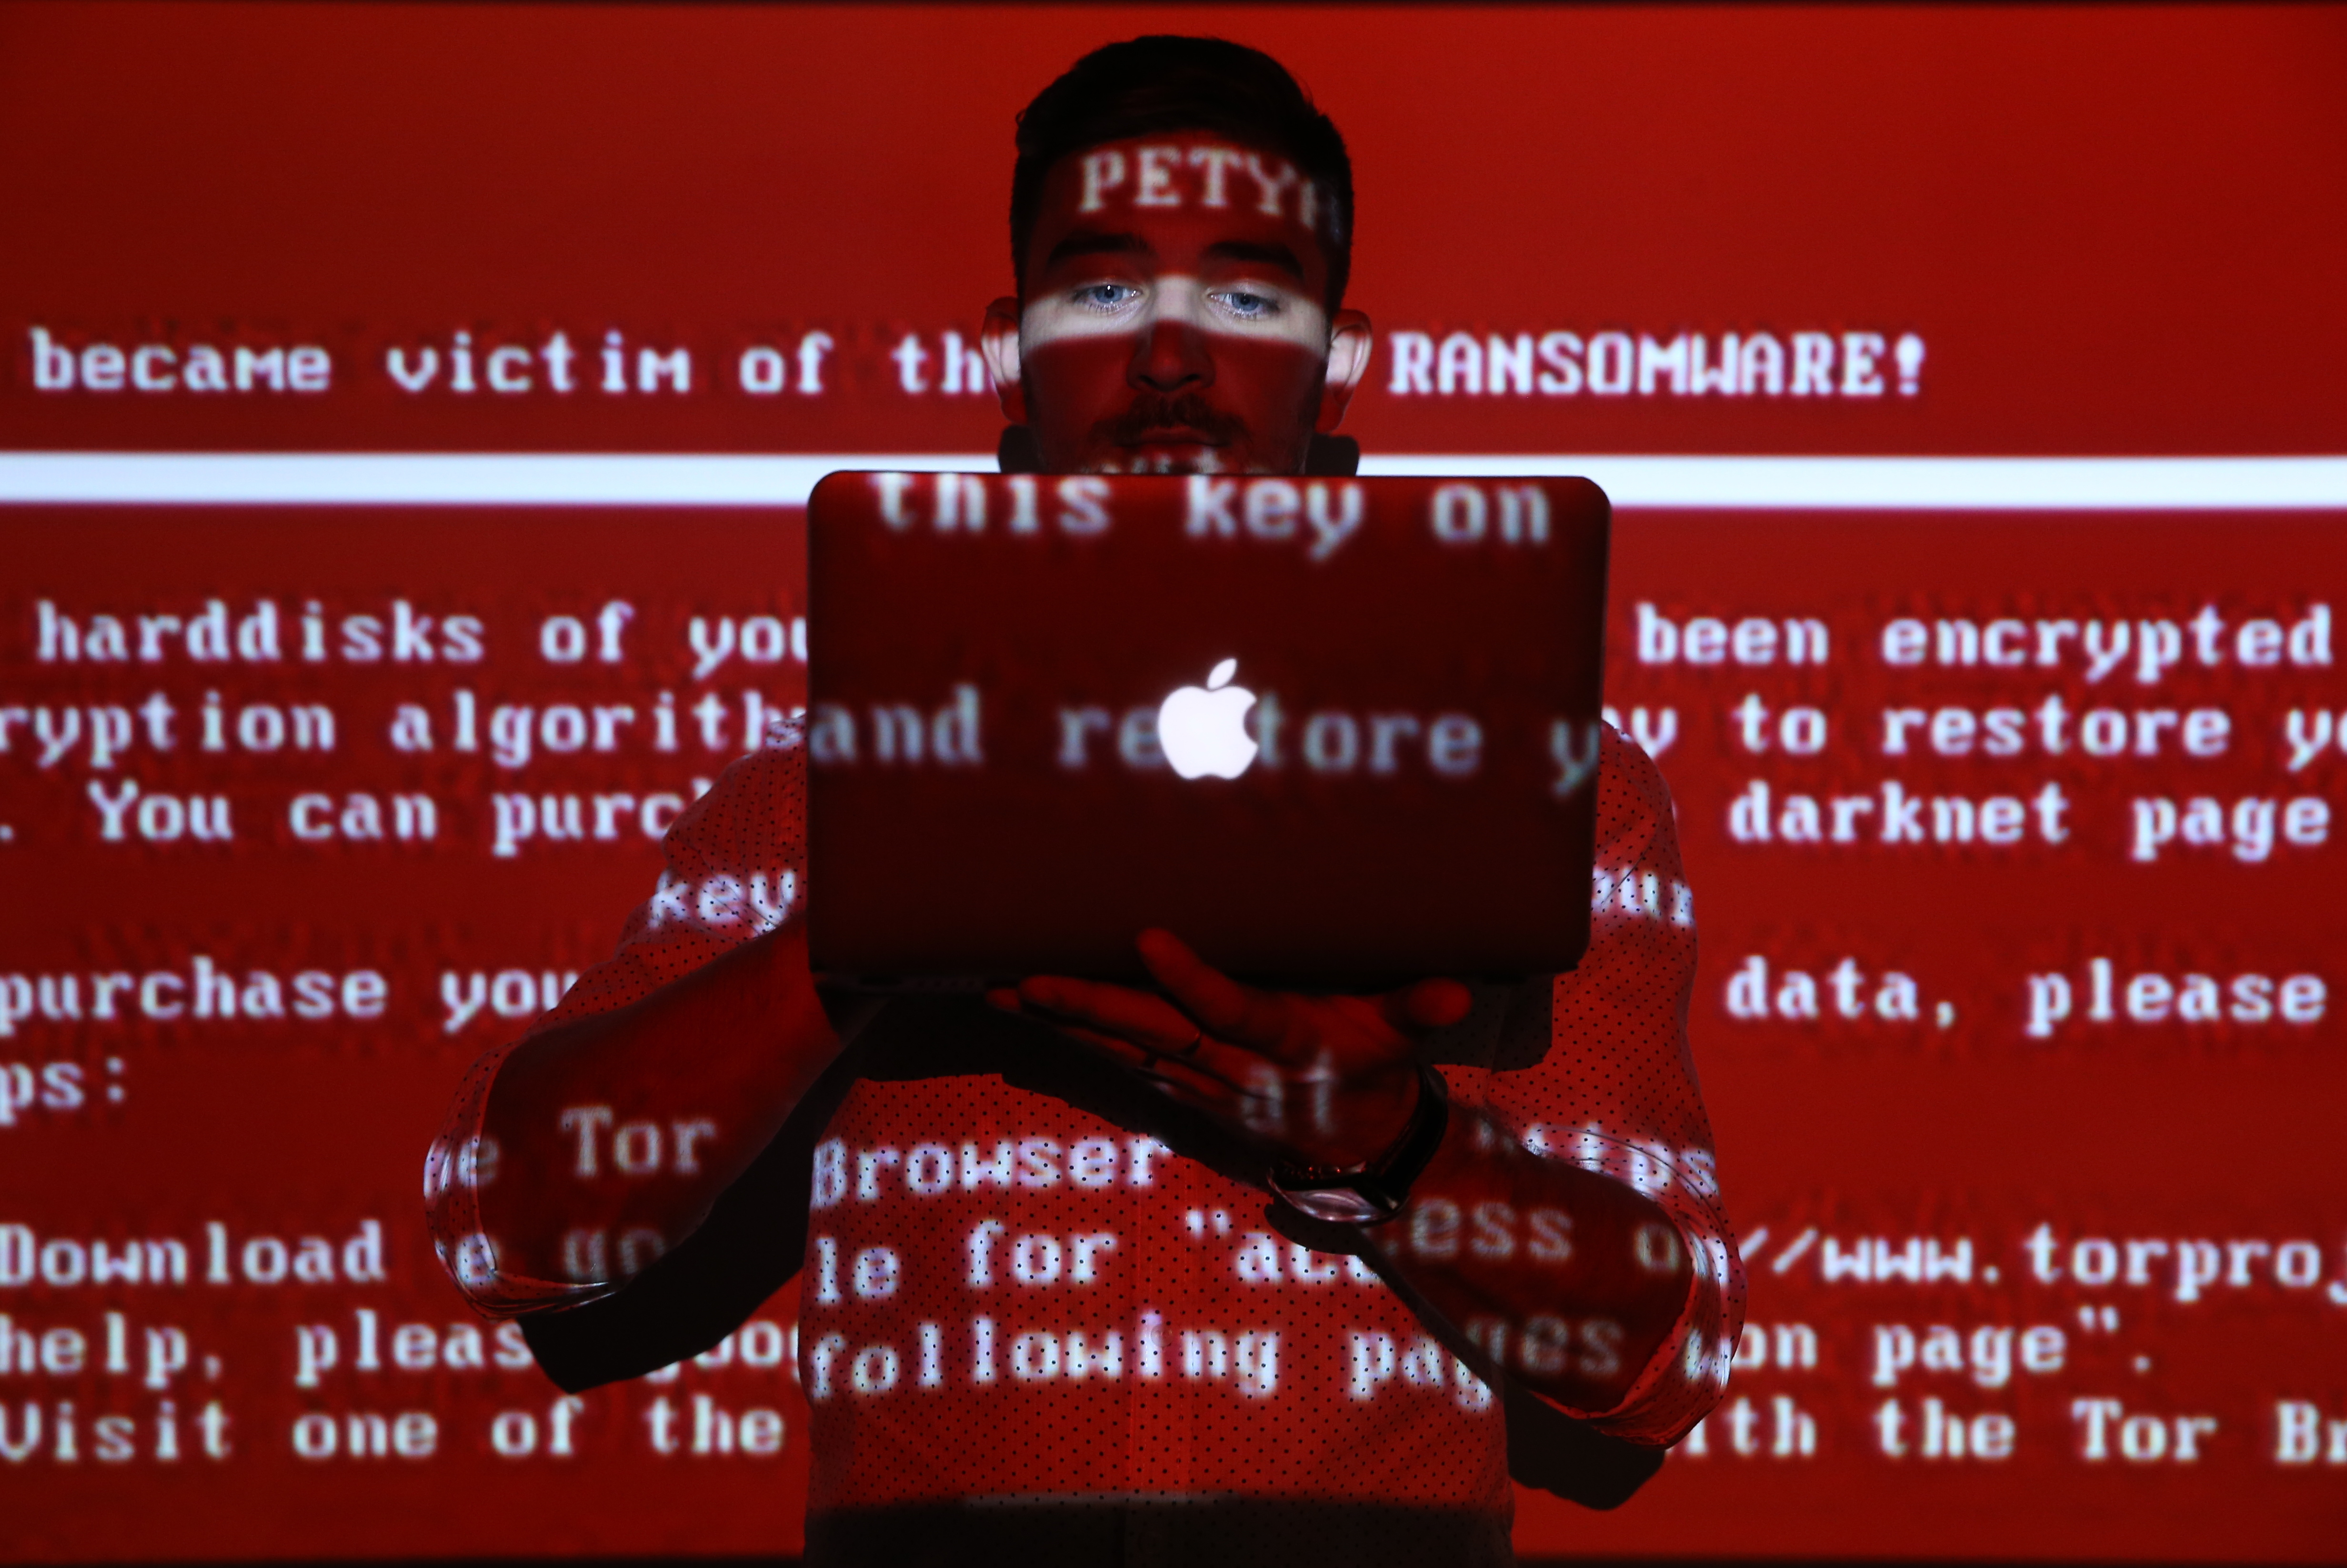 Petya ransomware cyber attack